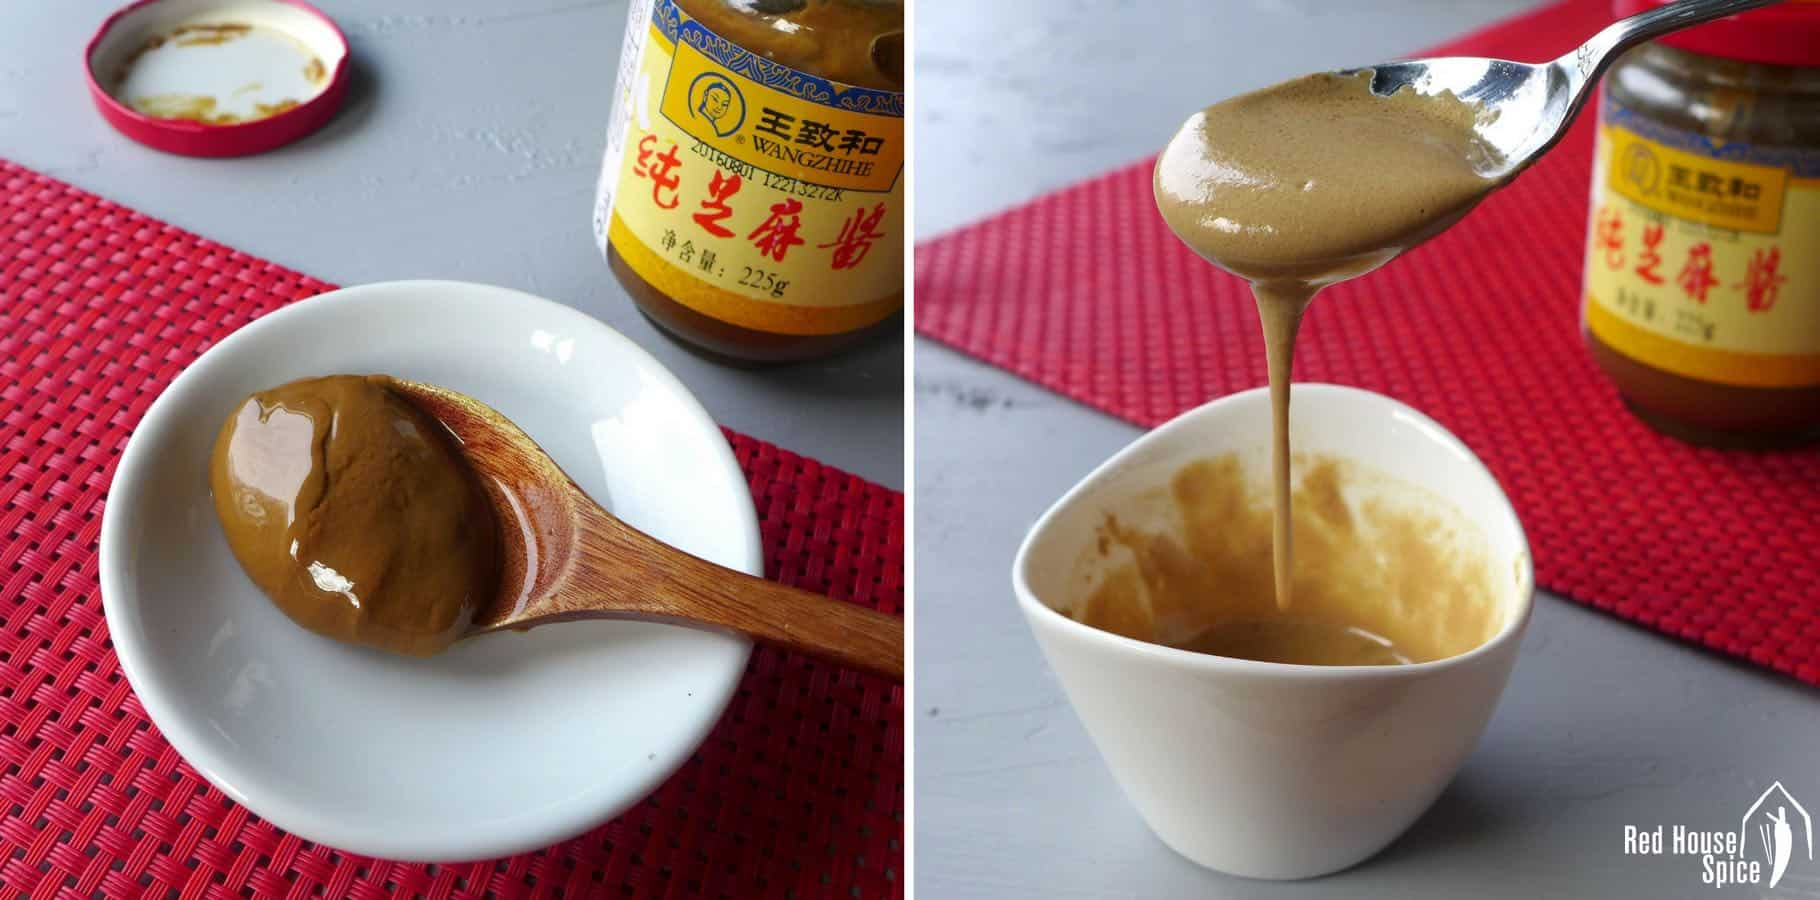 Chinese sesame paste is a popular condiment used in noodles, salad, hot-pot dipping sauce, etc. It can be substituted in three ways.